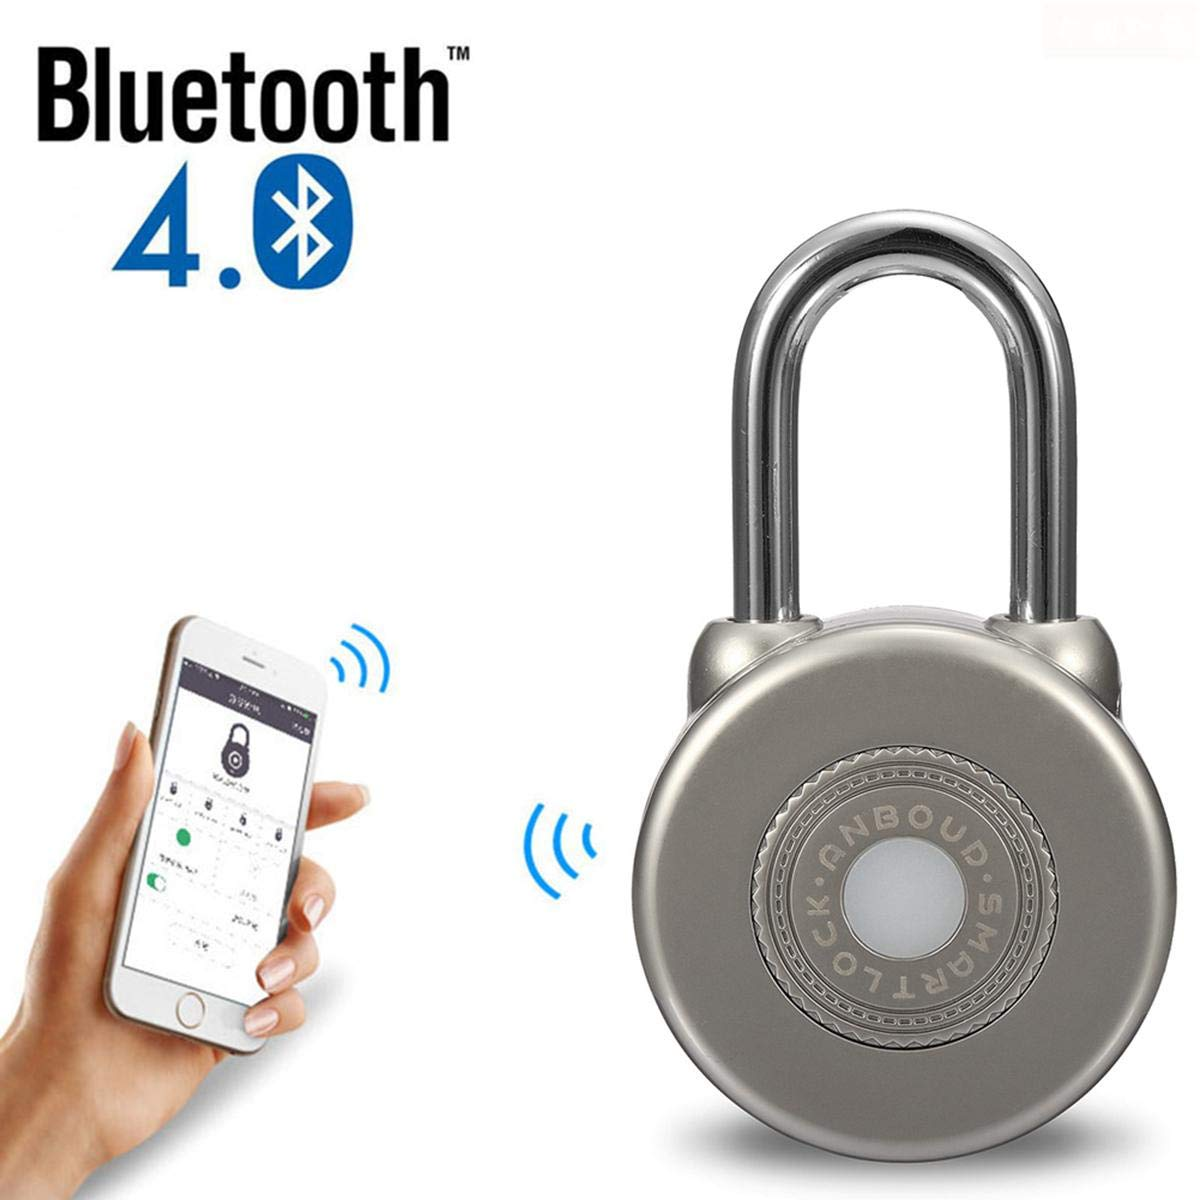 LAYOPO Fingerprint Padlock, Bluetooth Connection Smart Keyless Lock Anti-Theft Padlock iOS/Android APP Control Lock for House Door, Suitcase, Backpack, Gym, Bike, Office